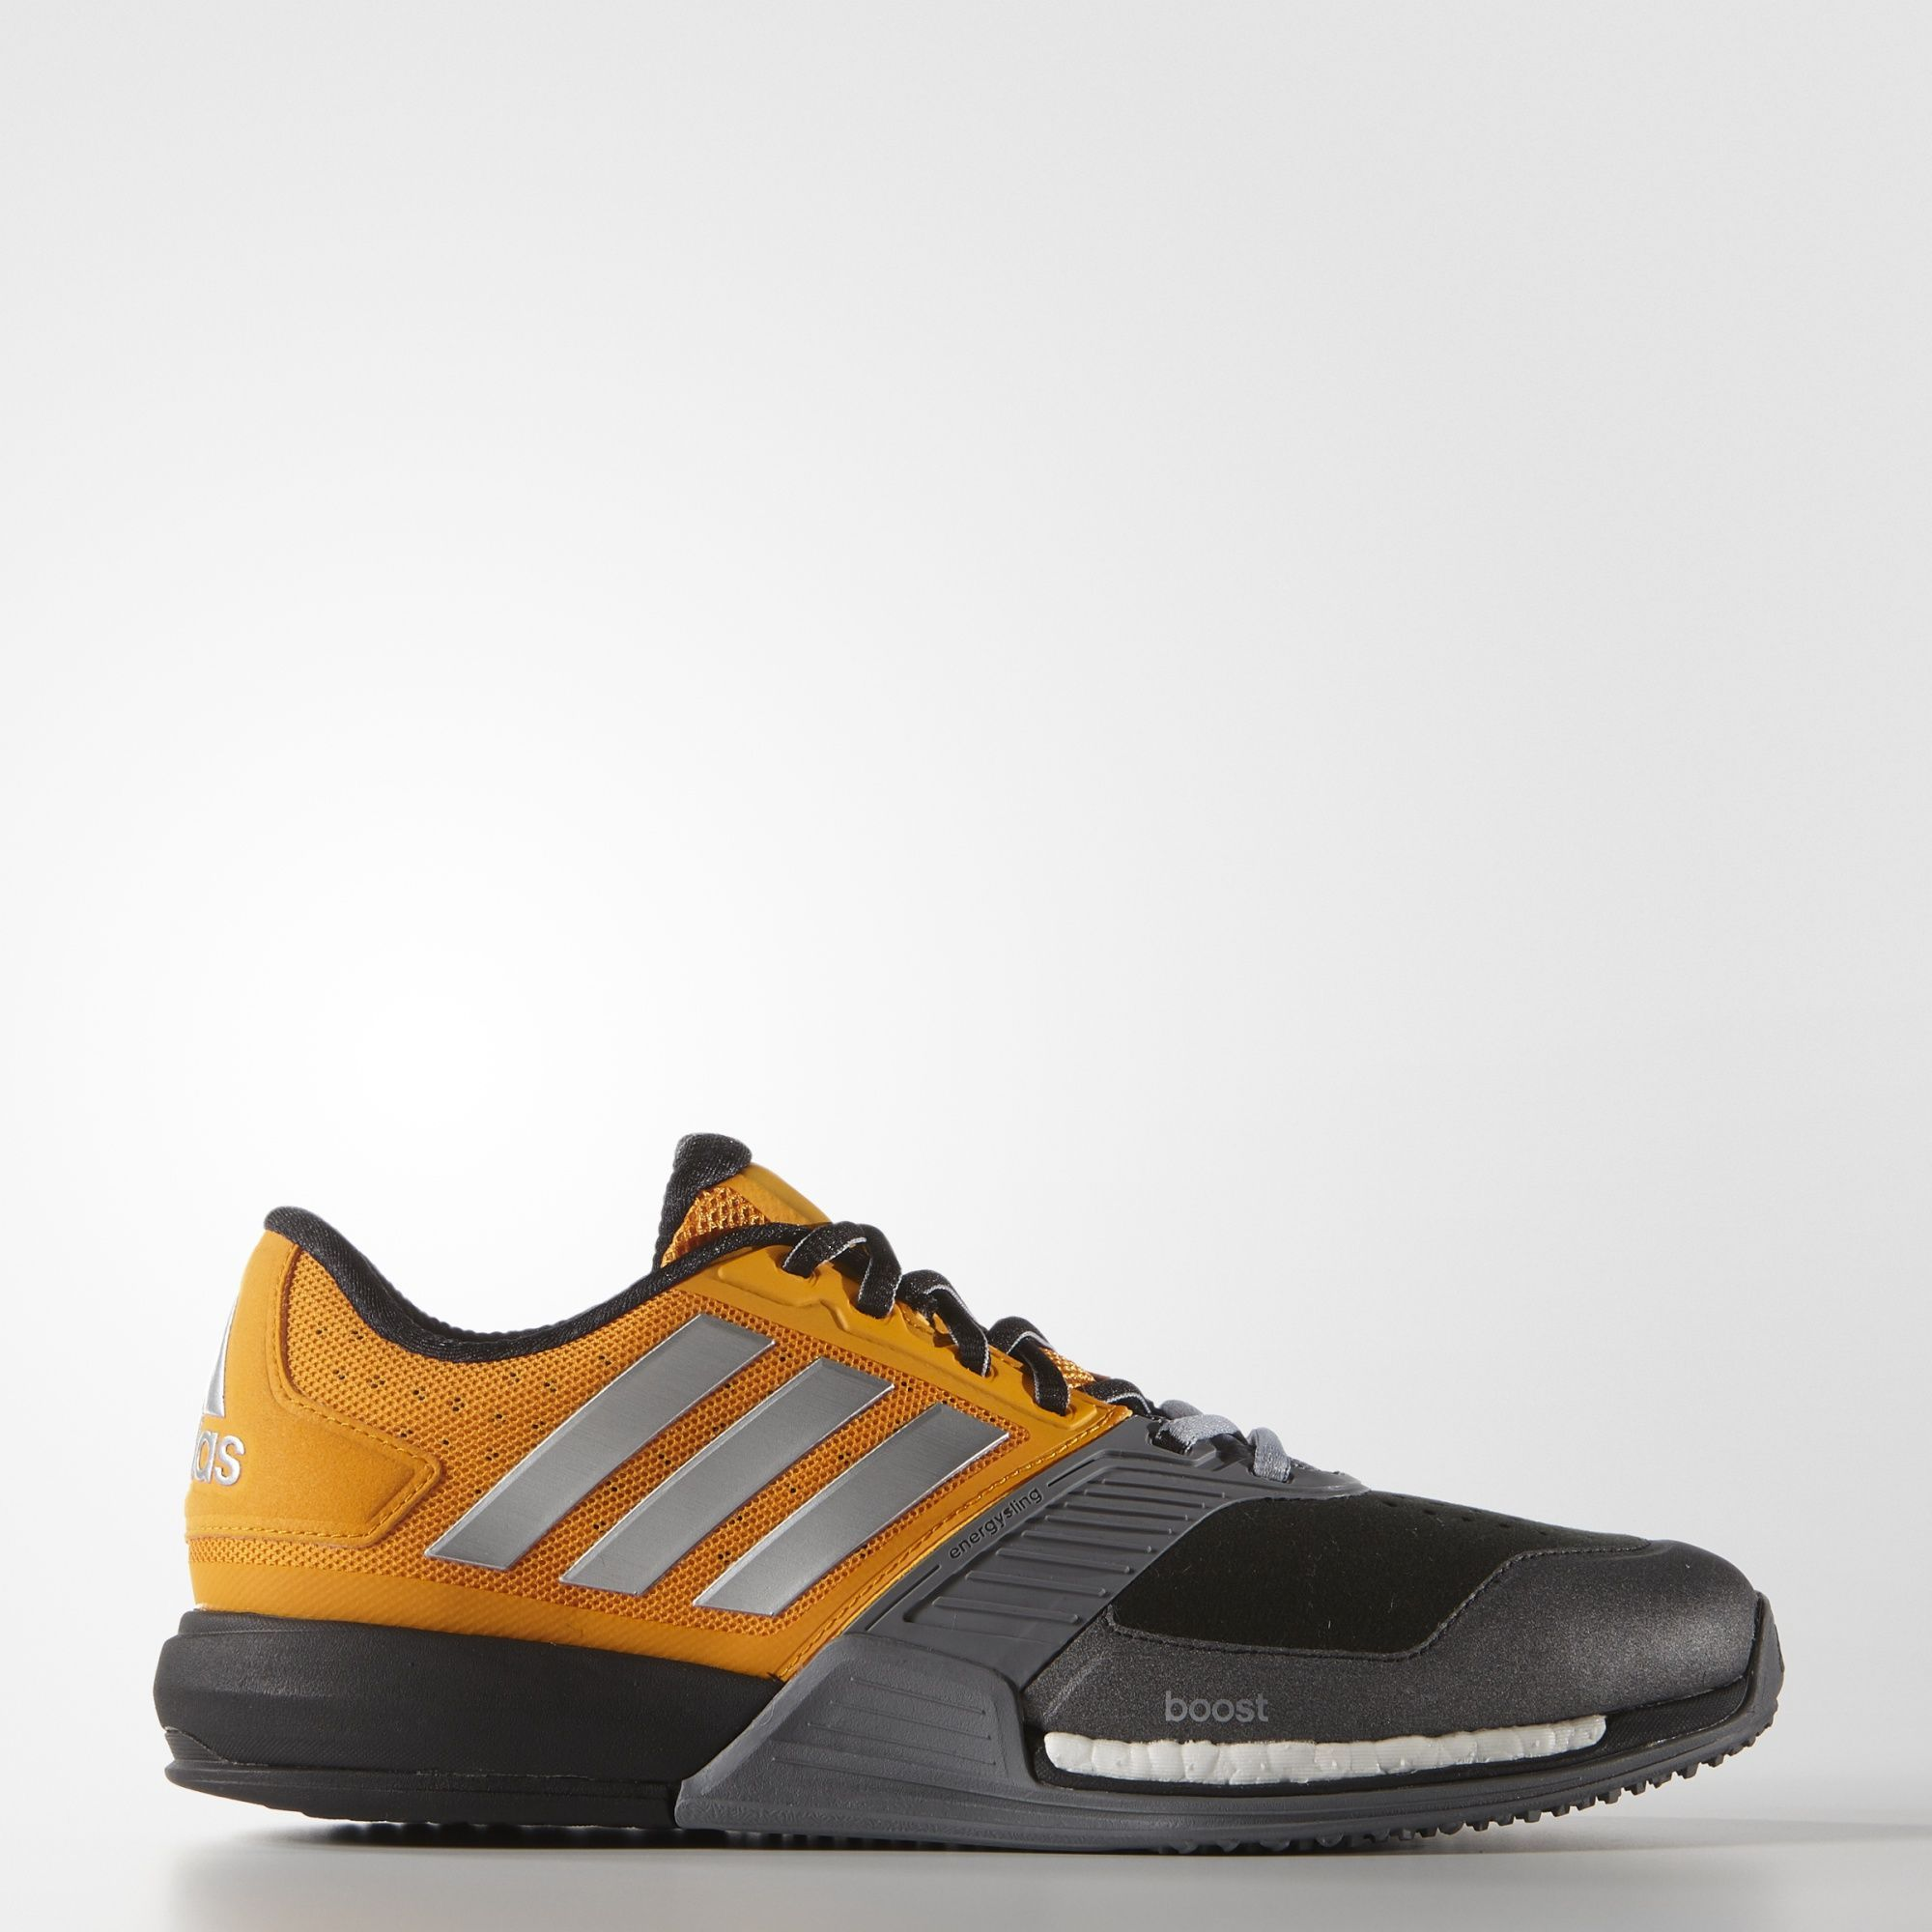 16bb519f45 adidas - Crazy Train Boost Shoes | Bless your Soles | Adidas, Boost ...